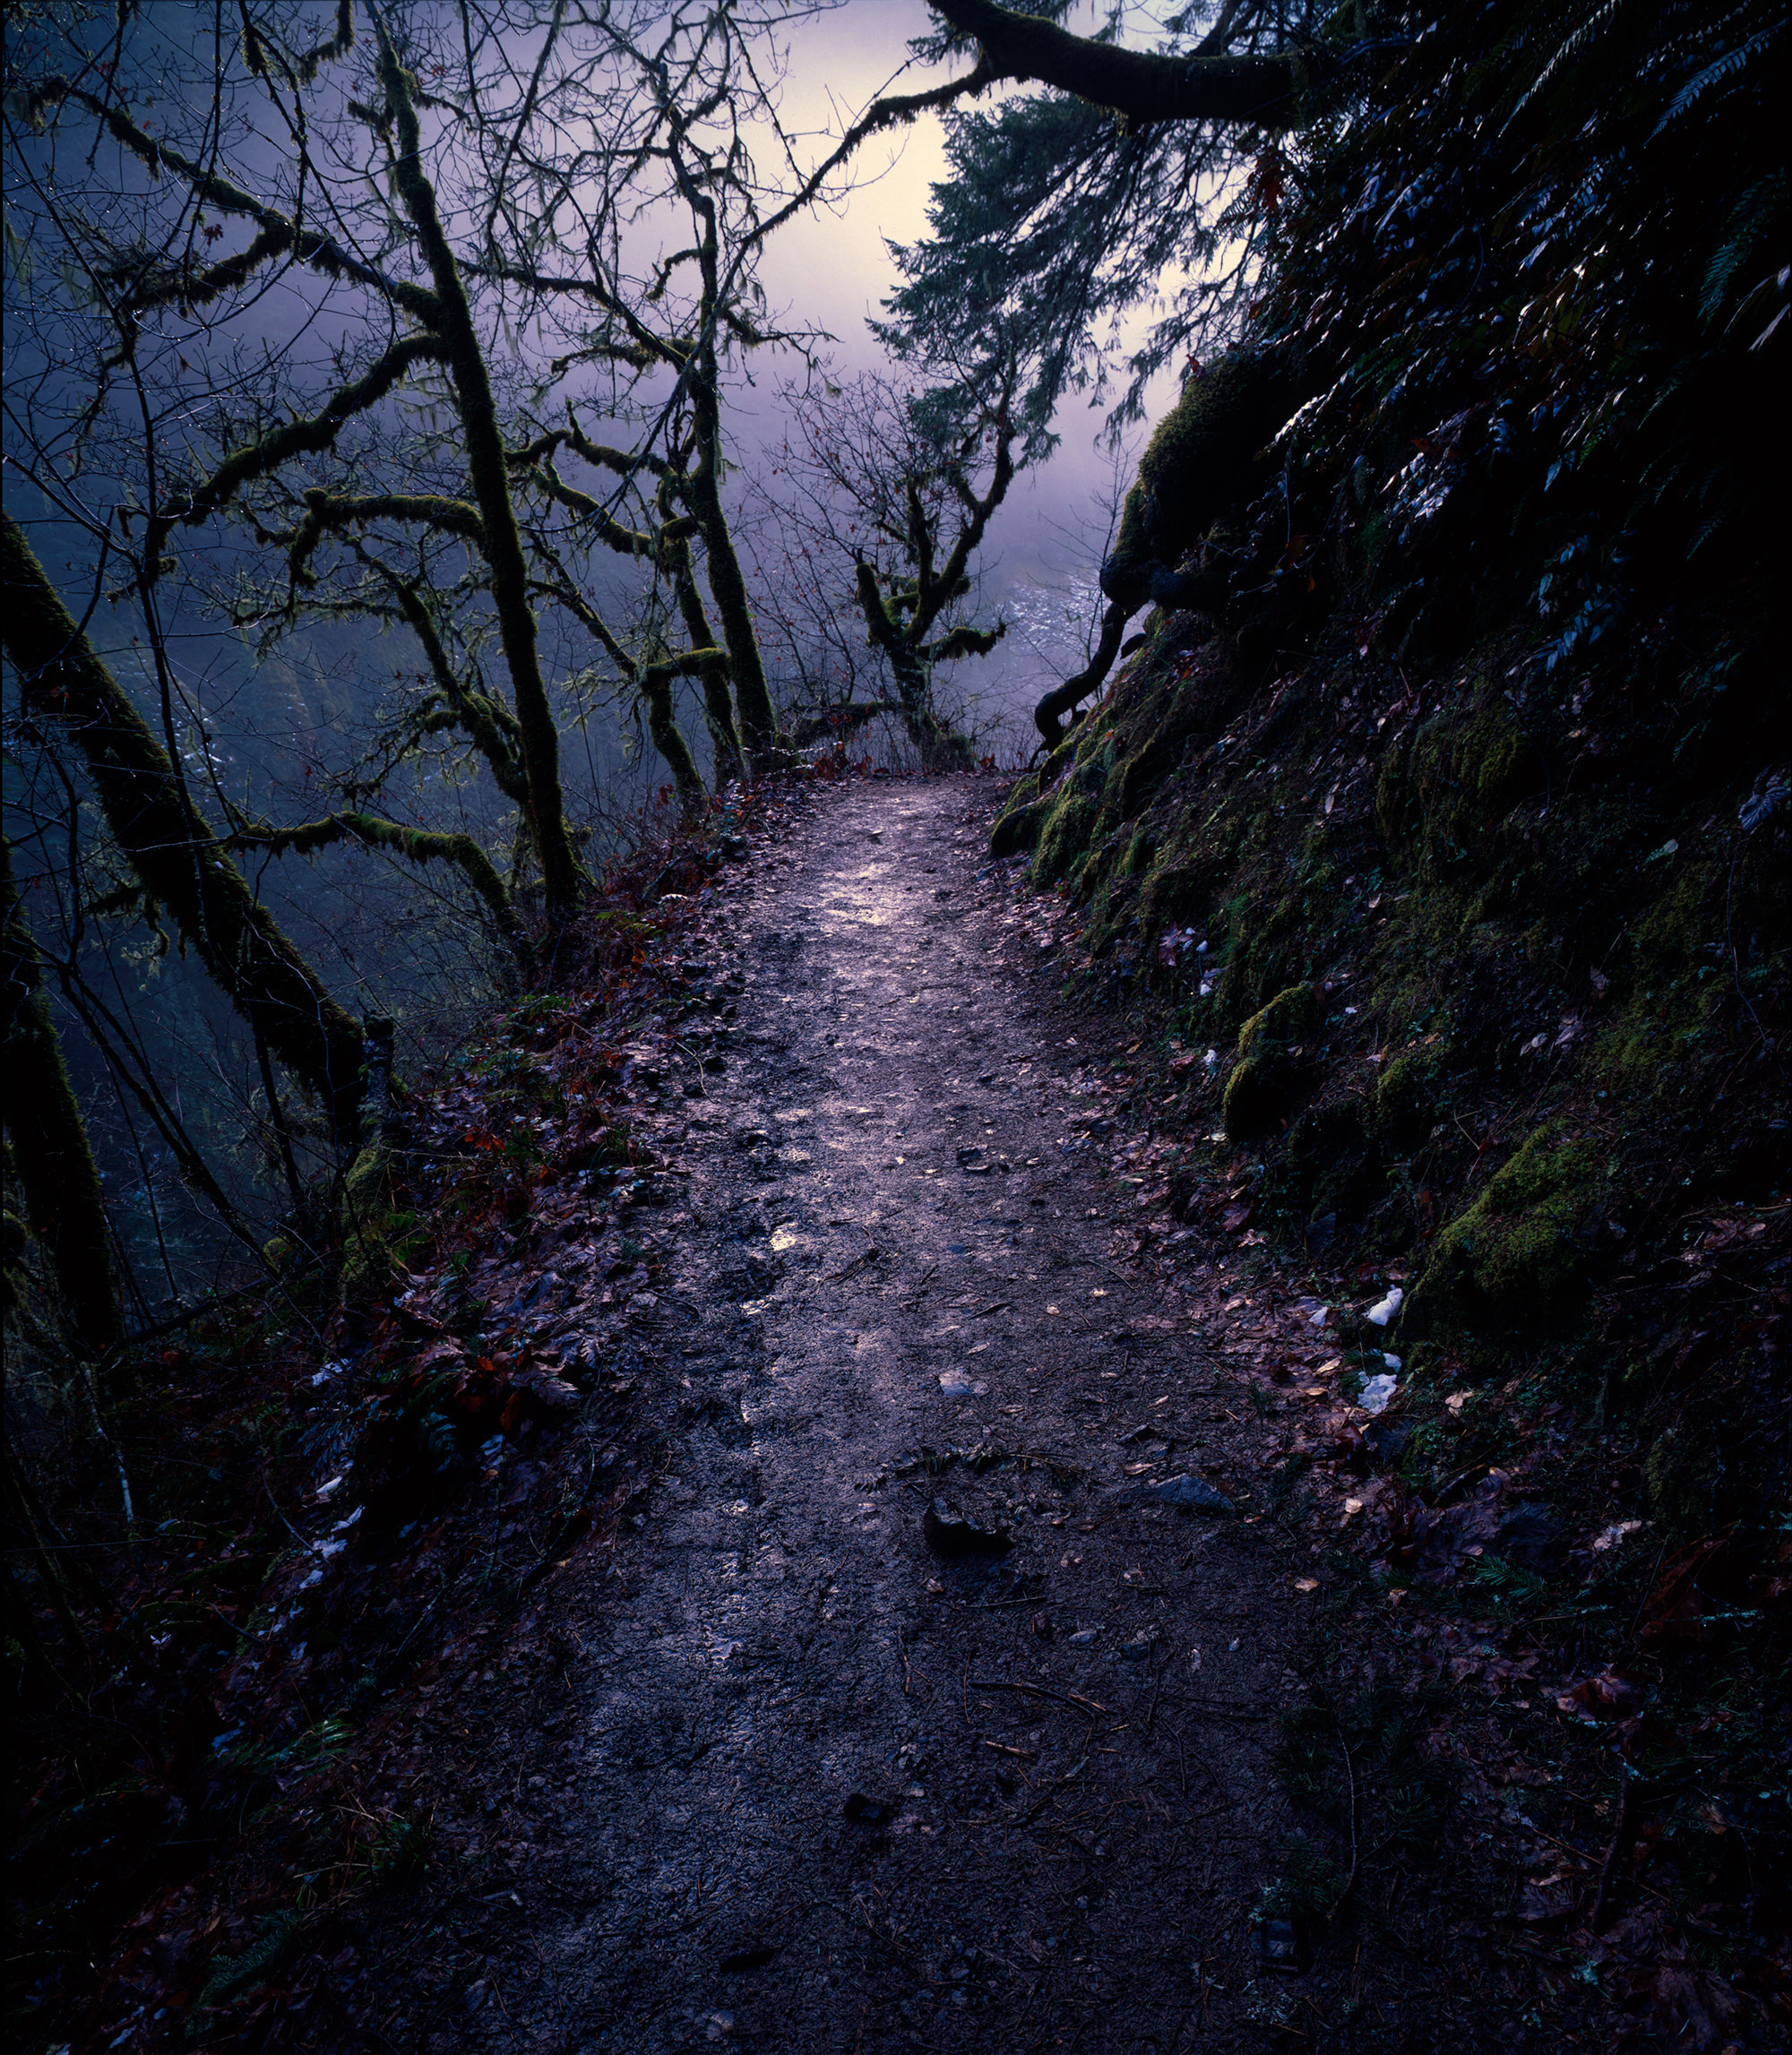 Image of the Eagle Creek Trail in the Columbia River Gorge, within the vicinity of Portland, Oregon.